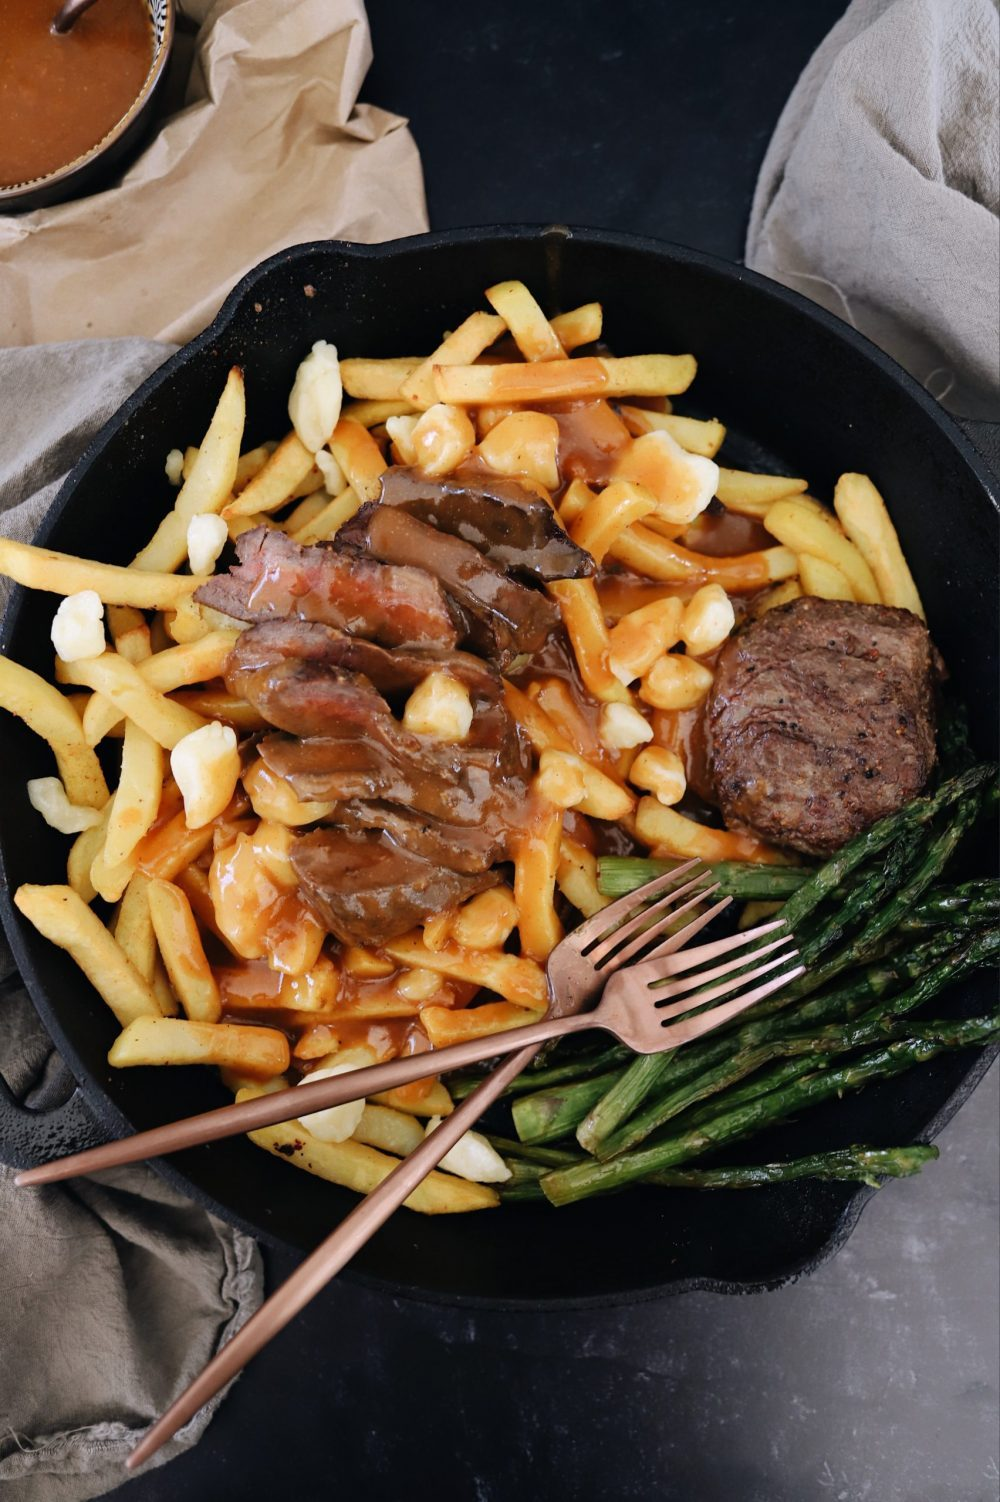 An Easy Steak Poutine Recipe with Fries and Gravy |Poutine Recipe by popular Florida lifestyle blog, Fresh Mommy Blog: image of steak poutine and asparagus in a black skillet.